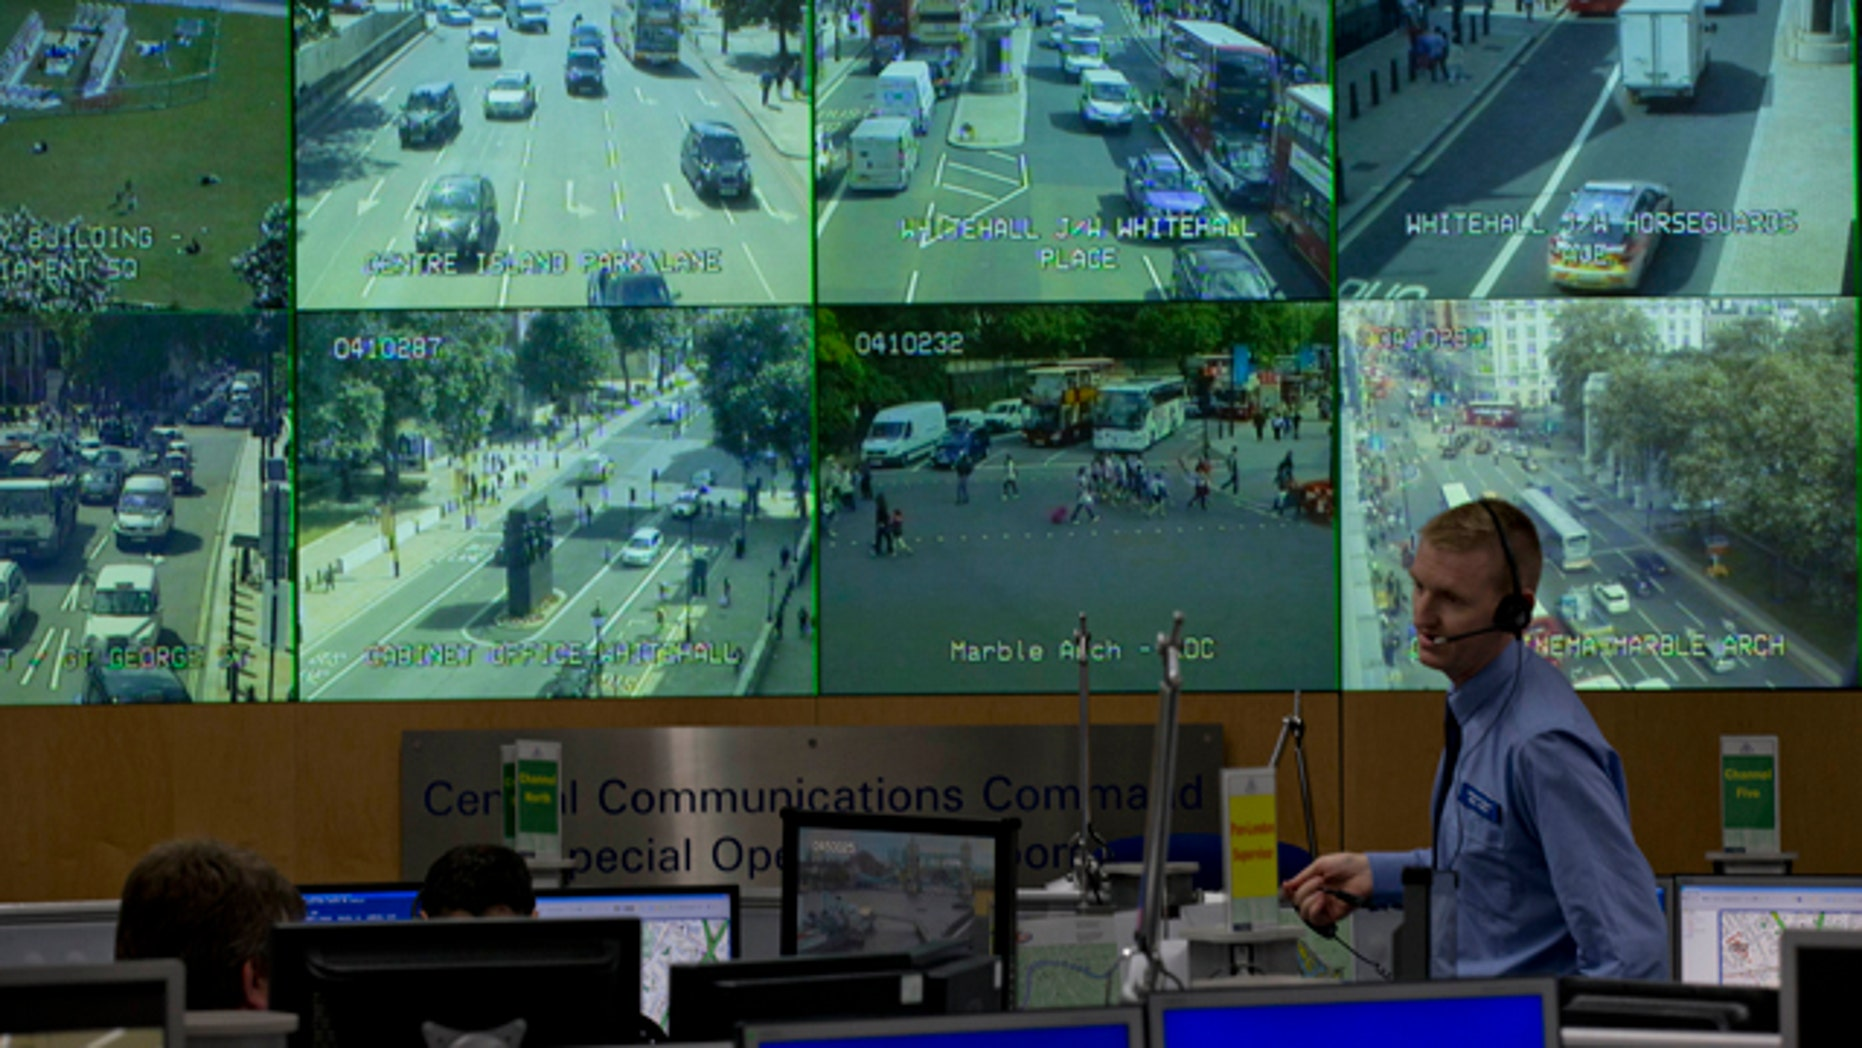 July 19, 2012: A member of police staff stands in front of CCTV screens in London's Metropolitan Police Service Special Operations Room in central London.